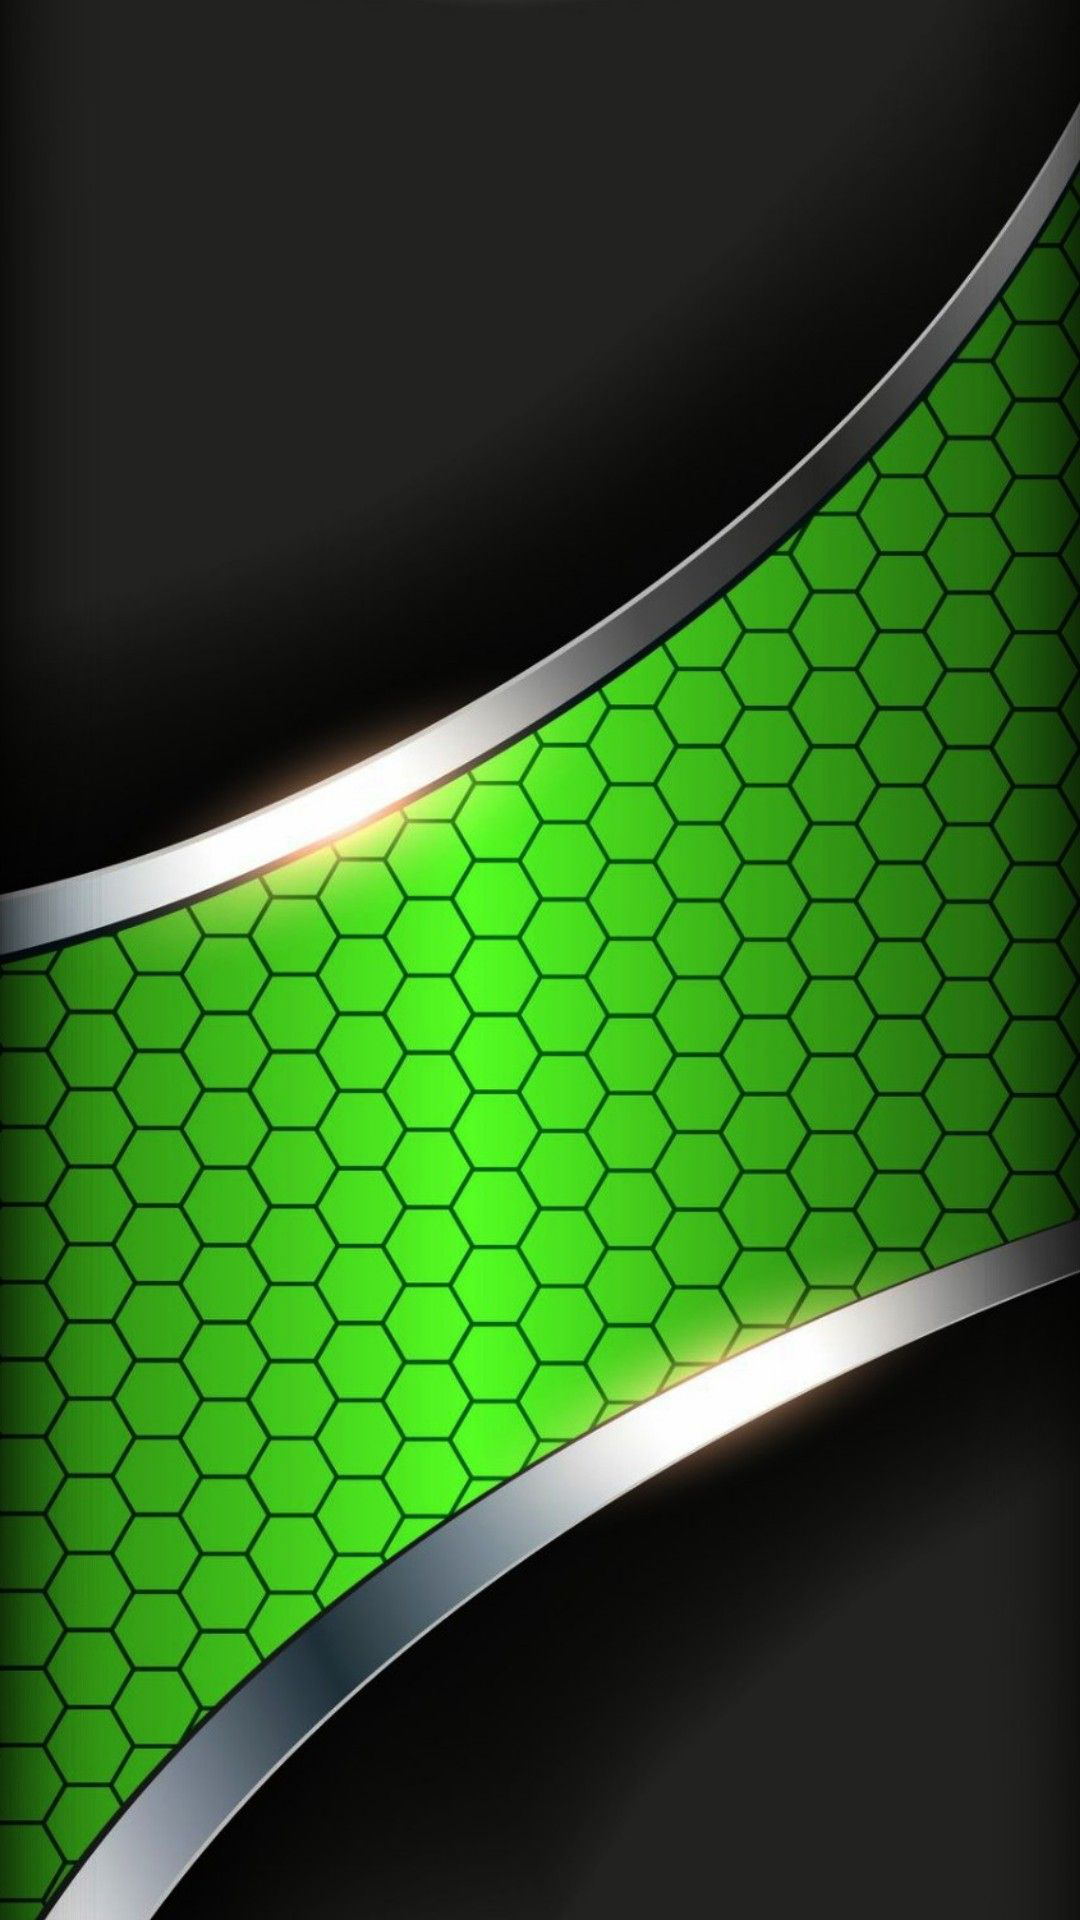 Wired Green #wallpaperwallpaperss7edge (wallpaper ...